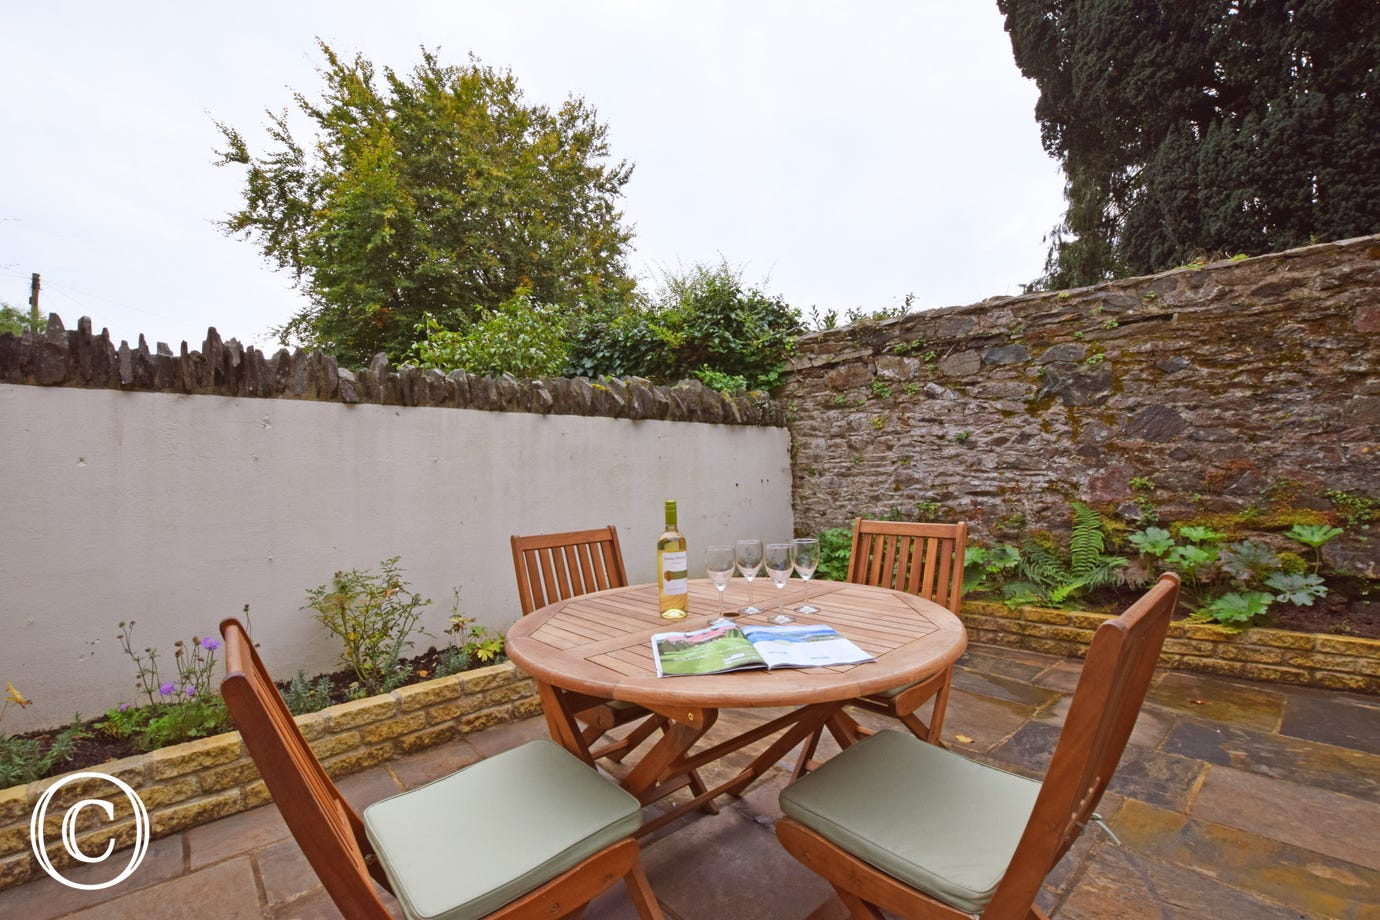 Wild Rose Cottage, Asprington - Patio area with bistro tables